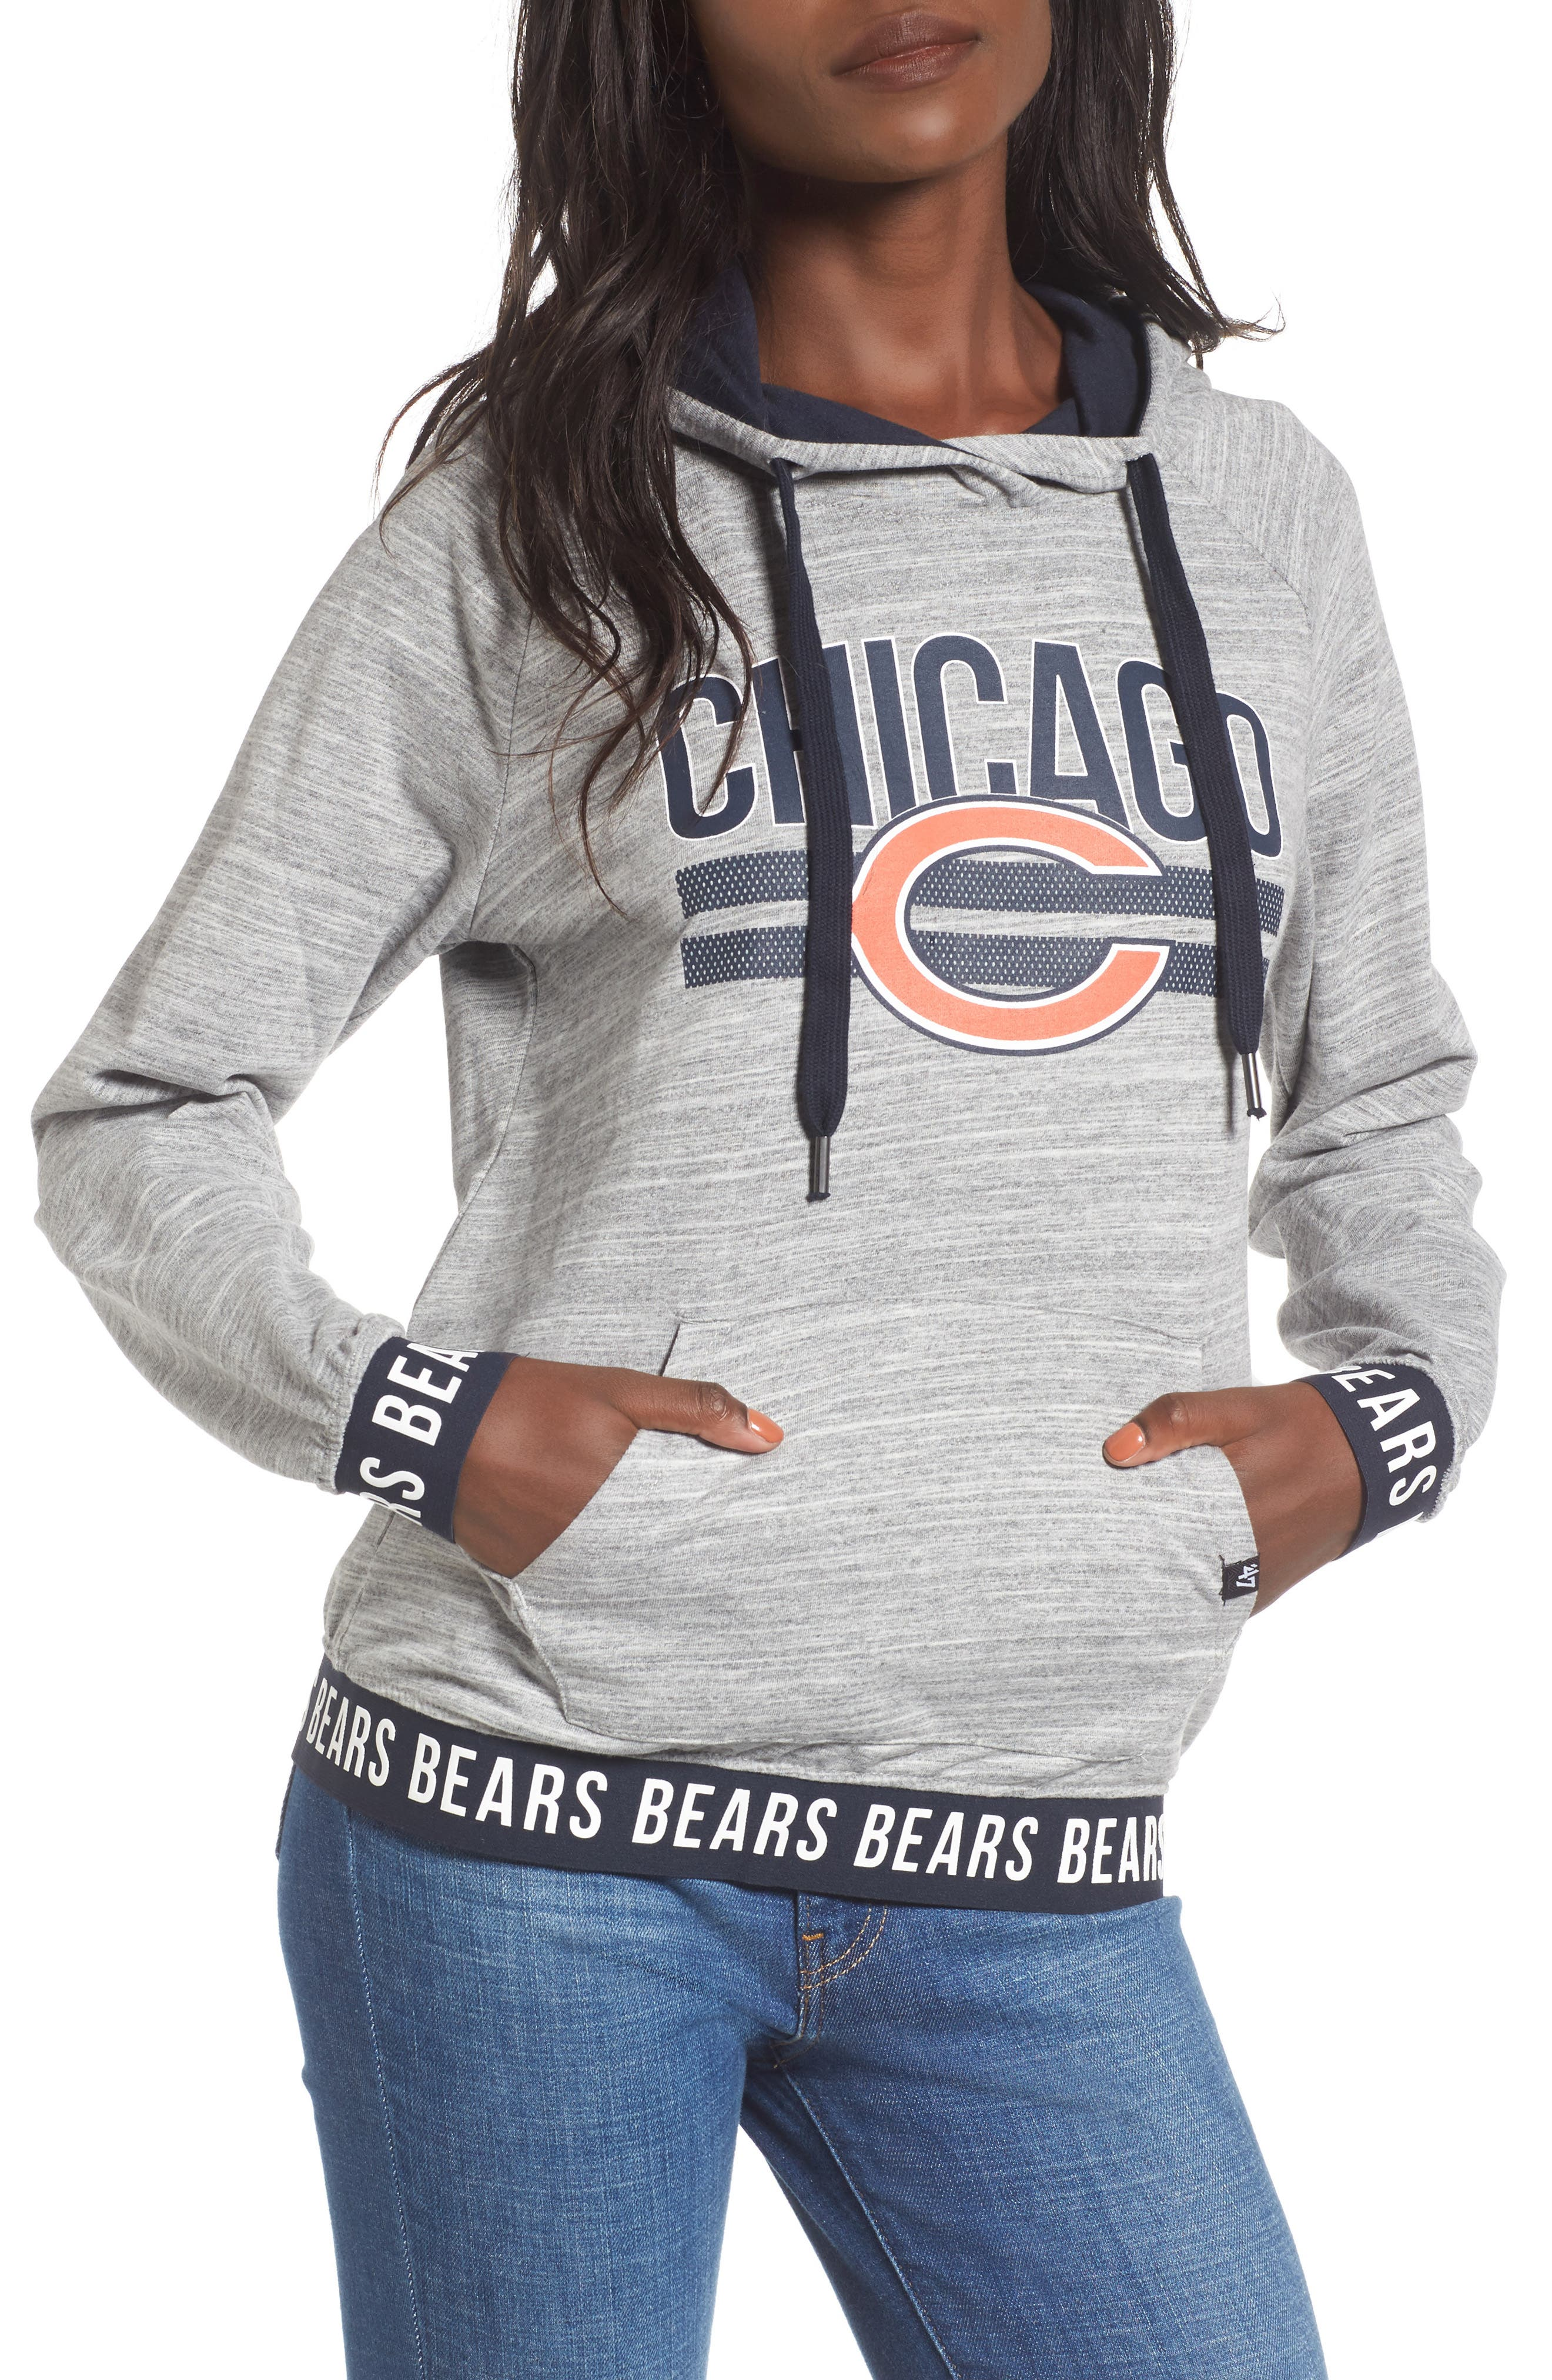 Revolve - Chicago Bears Hoodie,                             Main thumbnail 1, color,                             020